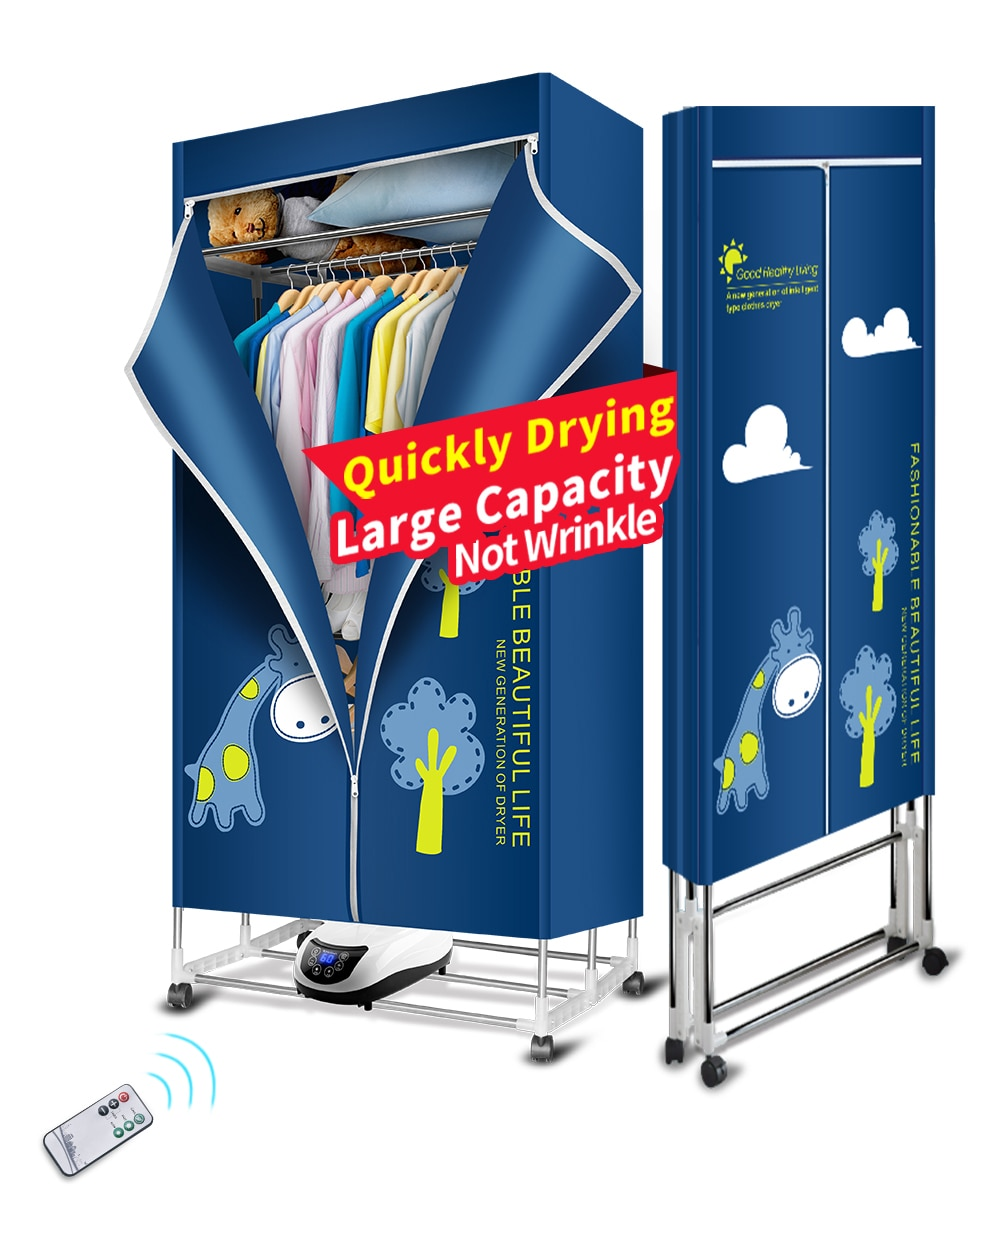 KASYDoFF Clothes Dryer Portable 1500W-1.7 Meters 3-Tier Foldable Clothes Drying Rack Energy Saving (Anion) Clothing Dryers Digit